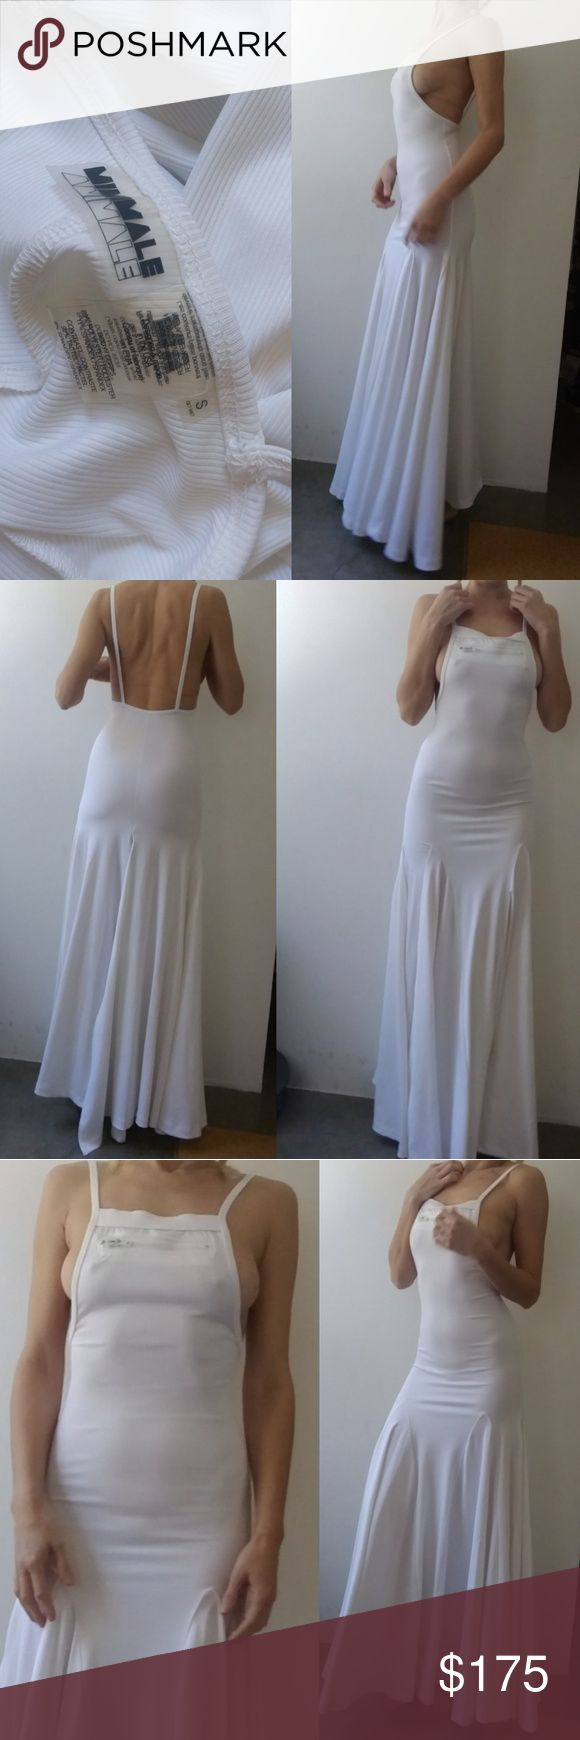 Nwot minimale animale festival white maxi dress s Pictures Say it all.. it's provocative and it's edgy and it's white and it stands out. Absolutely amazing rare piece from this friend I'm not a hundred percent sure I want to get rid of it so the price is firm no offers and no trades on this piece. Perfect new condition one only for a test shot indoors. Size small Minimale Animale Dresses Maxi